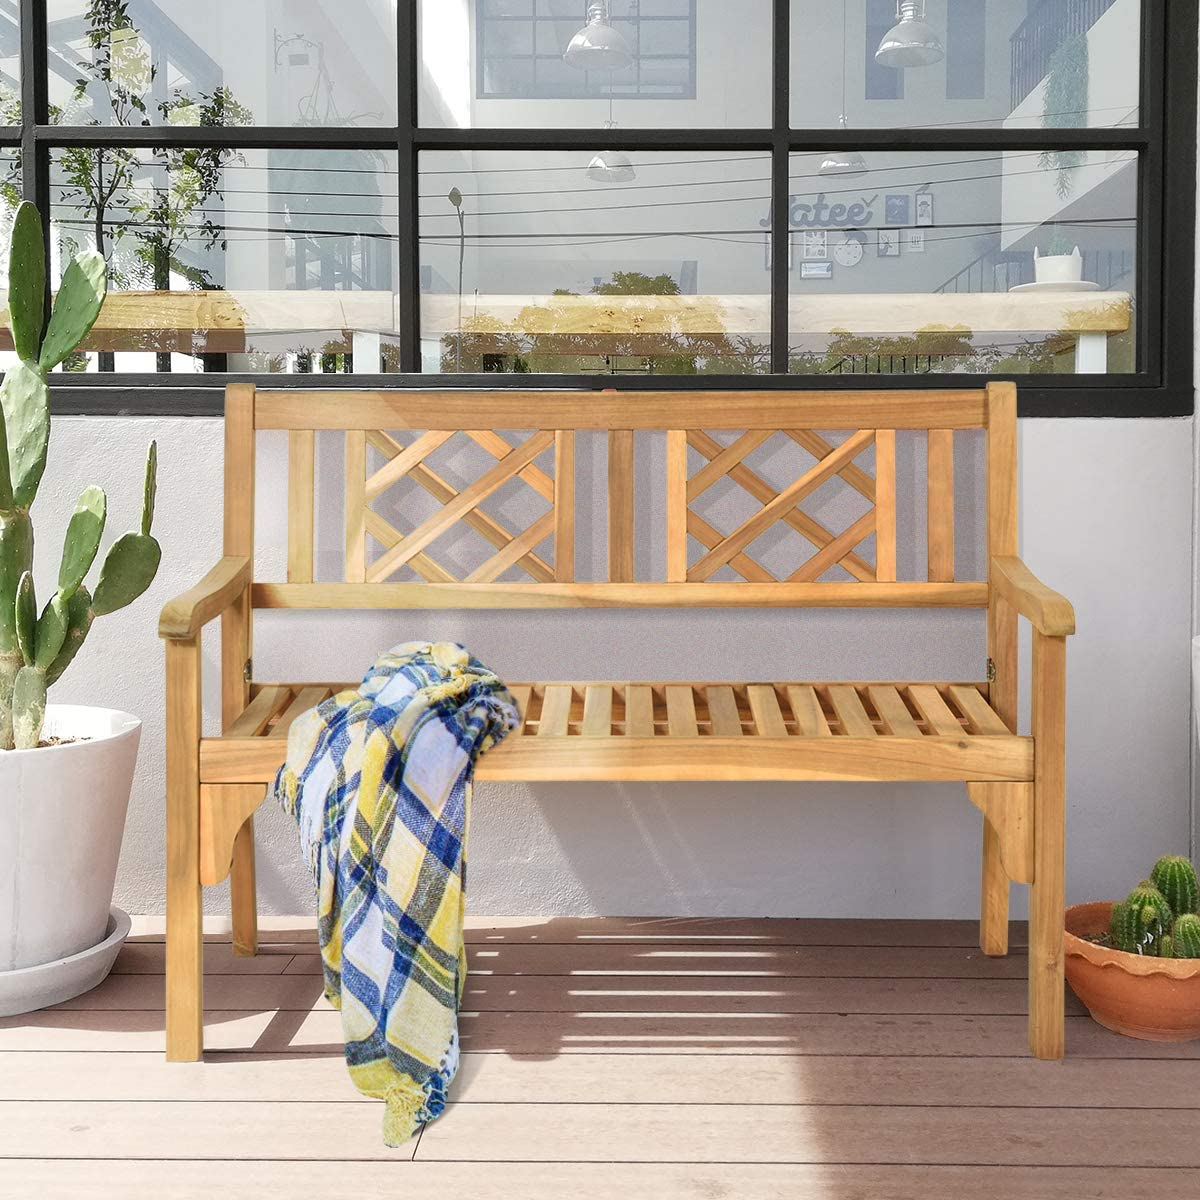 Giantex Patio Wooden Bench, 4 Ft Foldable Acacia Garden Bench, Two Person Loveseat Chair Solid with Curved Backrest and Armrest Ideal for Patio, Porch or Balcony Teak